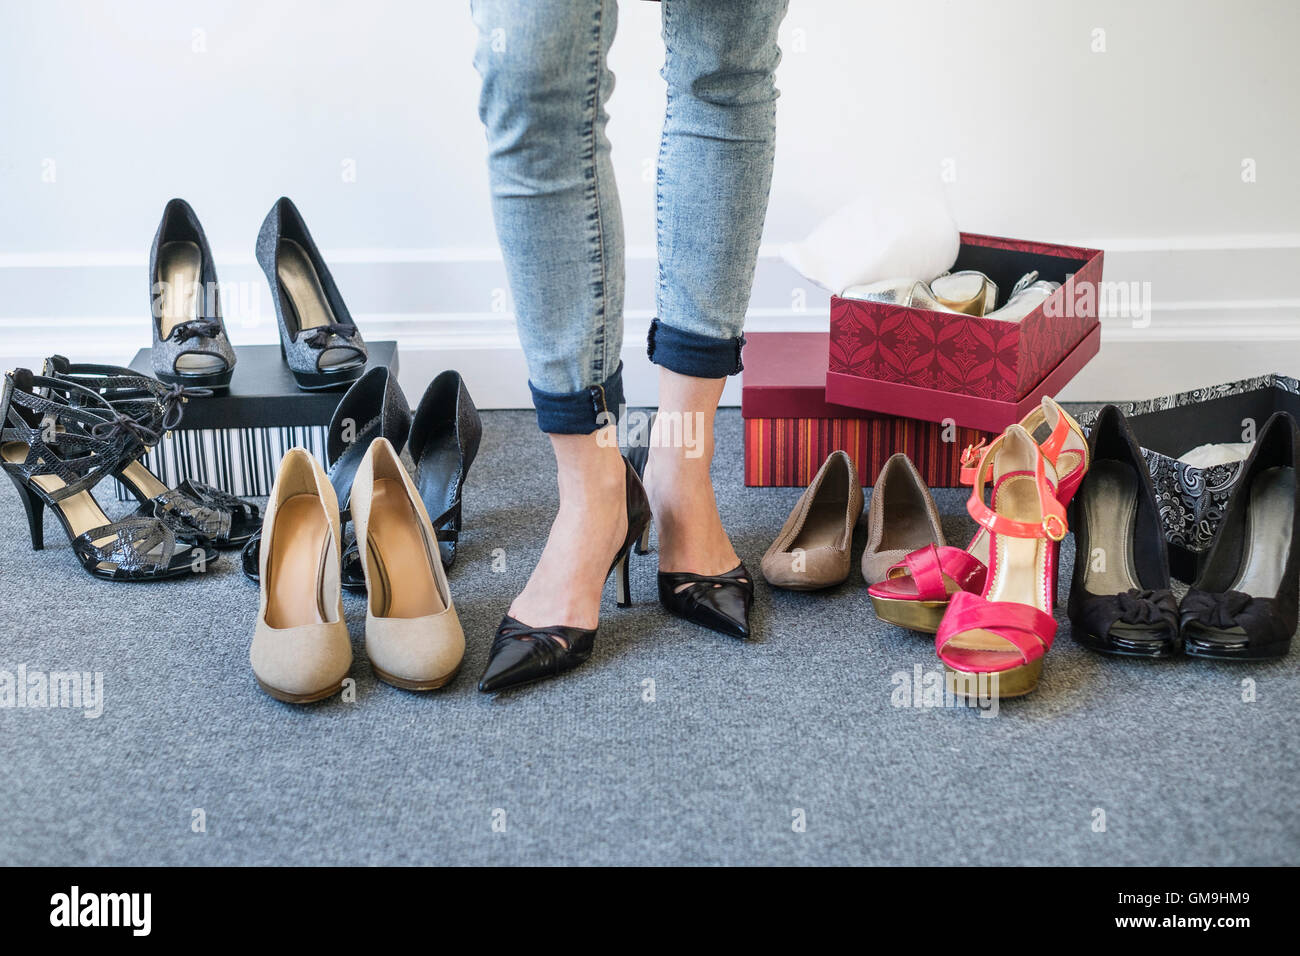 Woman trying on high heels on grey carpet - Stock Image